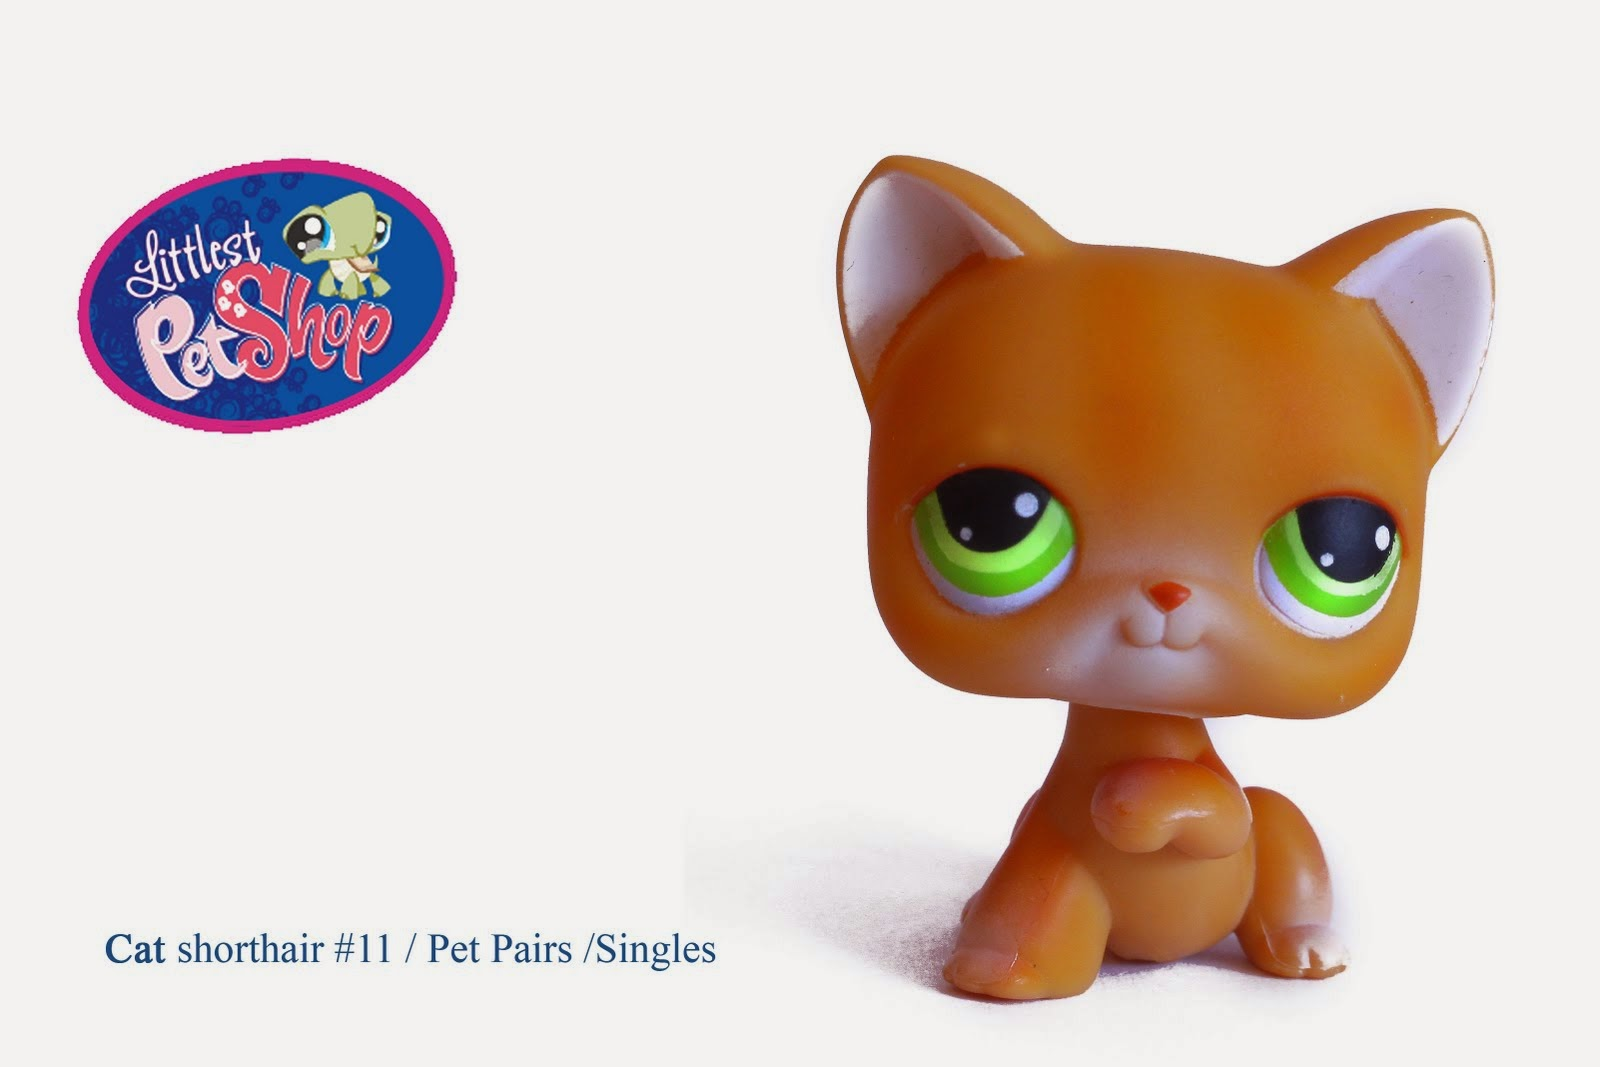 Find the largest collection of Littlest Pet Shop toys here in the LPS pet store! View LPS toys, figures & collectibles like LPS cats, LPS dogs, and much more!